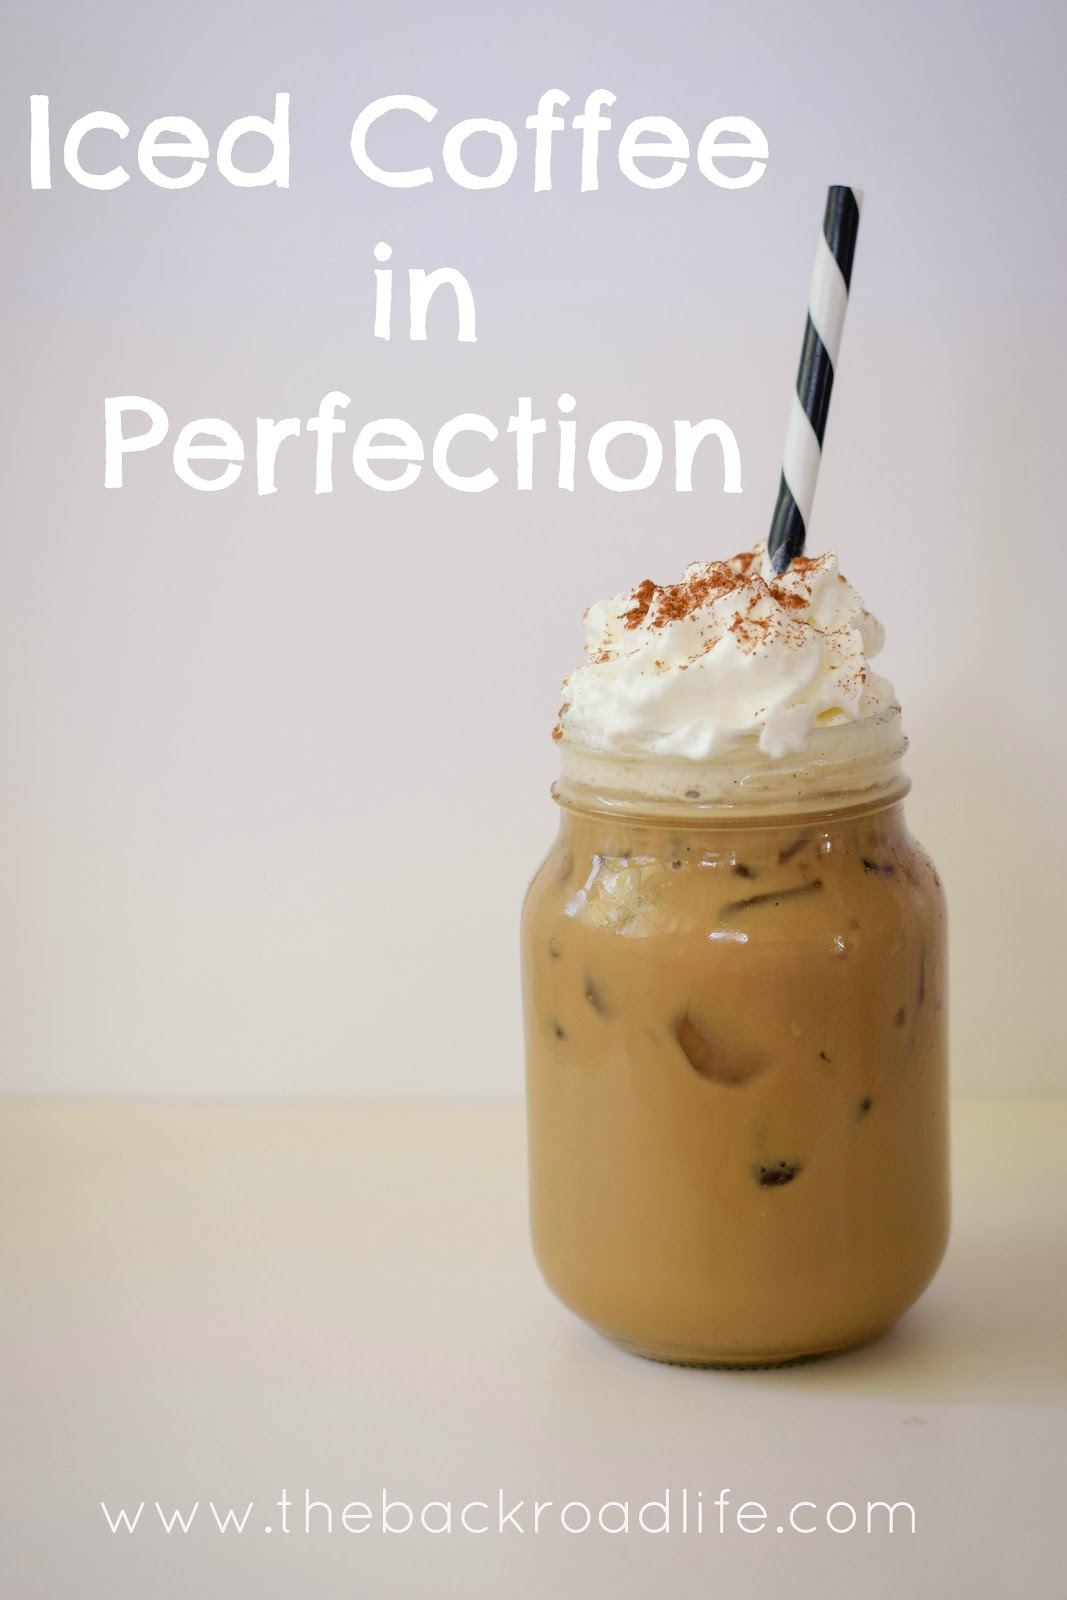 iced coffee in perfection.jpg